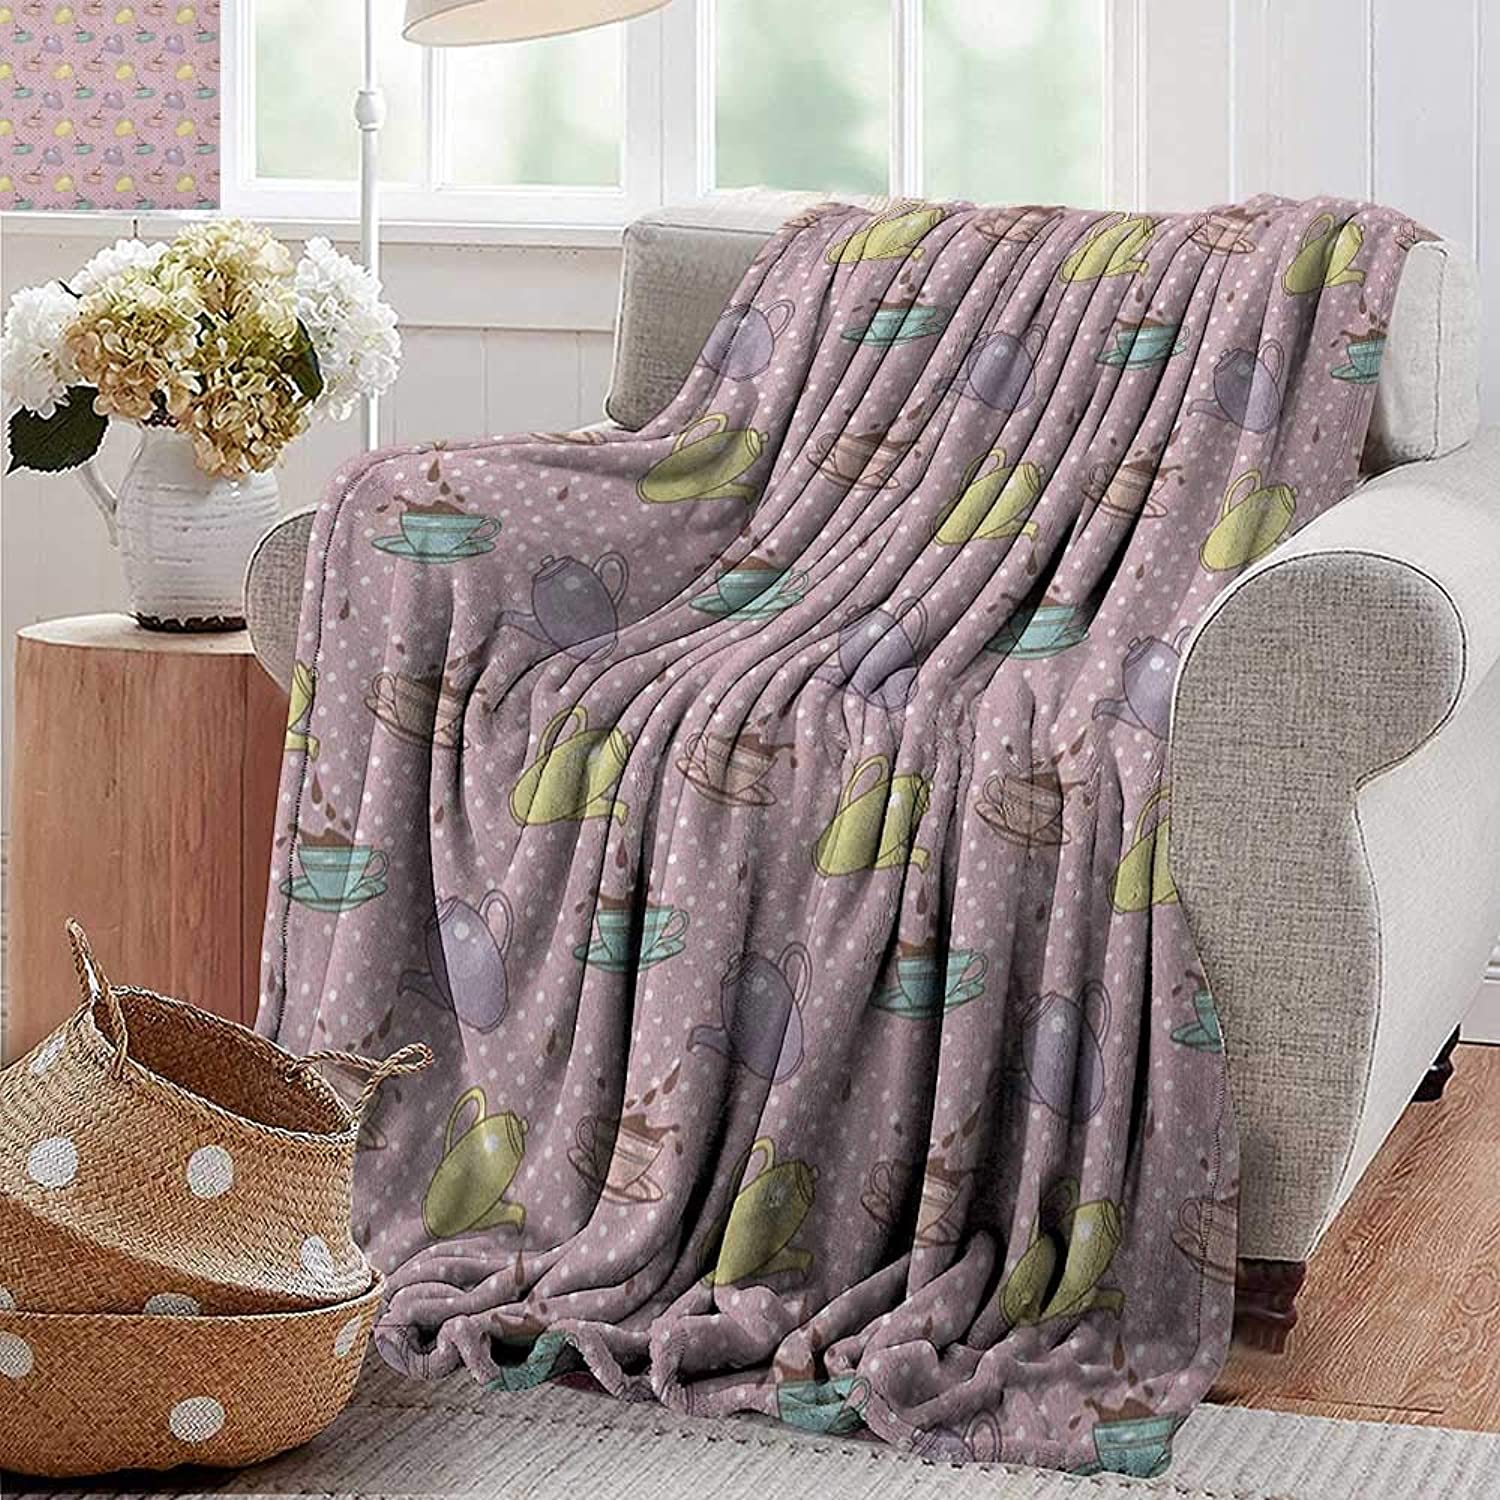 XavieraDoherty Summer Blanket,Tea Party,Polka Dots Background with Teapots Teacups Retro Cartoon Style, purplec Turquoise Pale Green,300GSM, Super Soft and Warm, Durable 35 x60